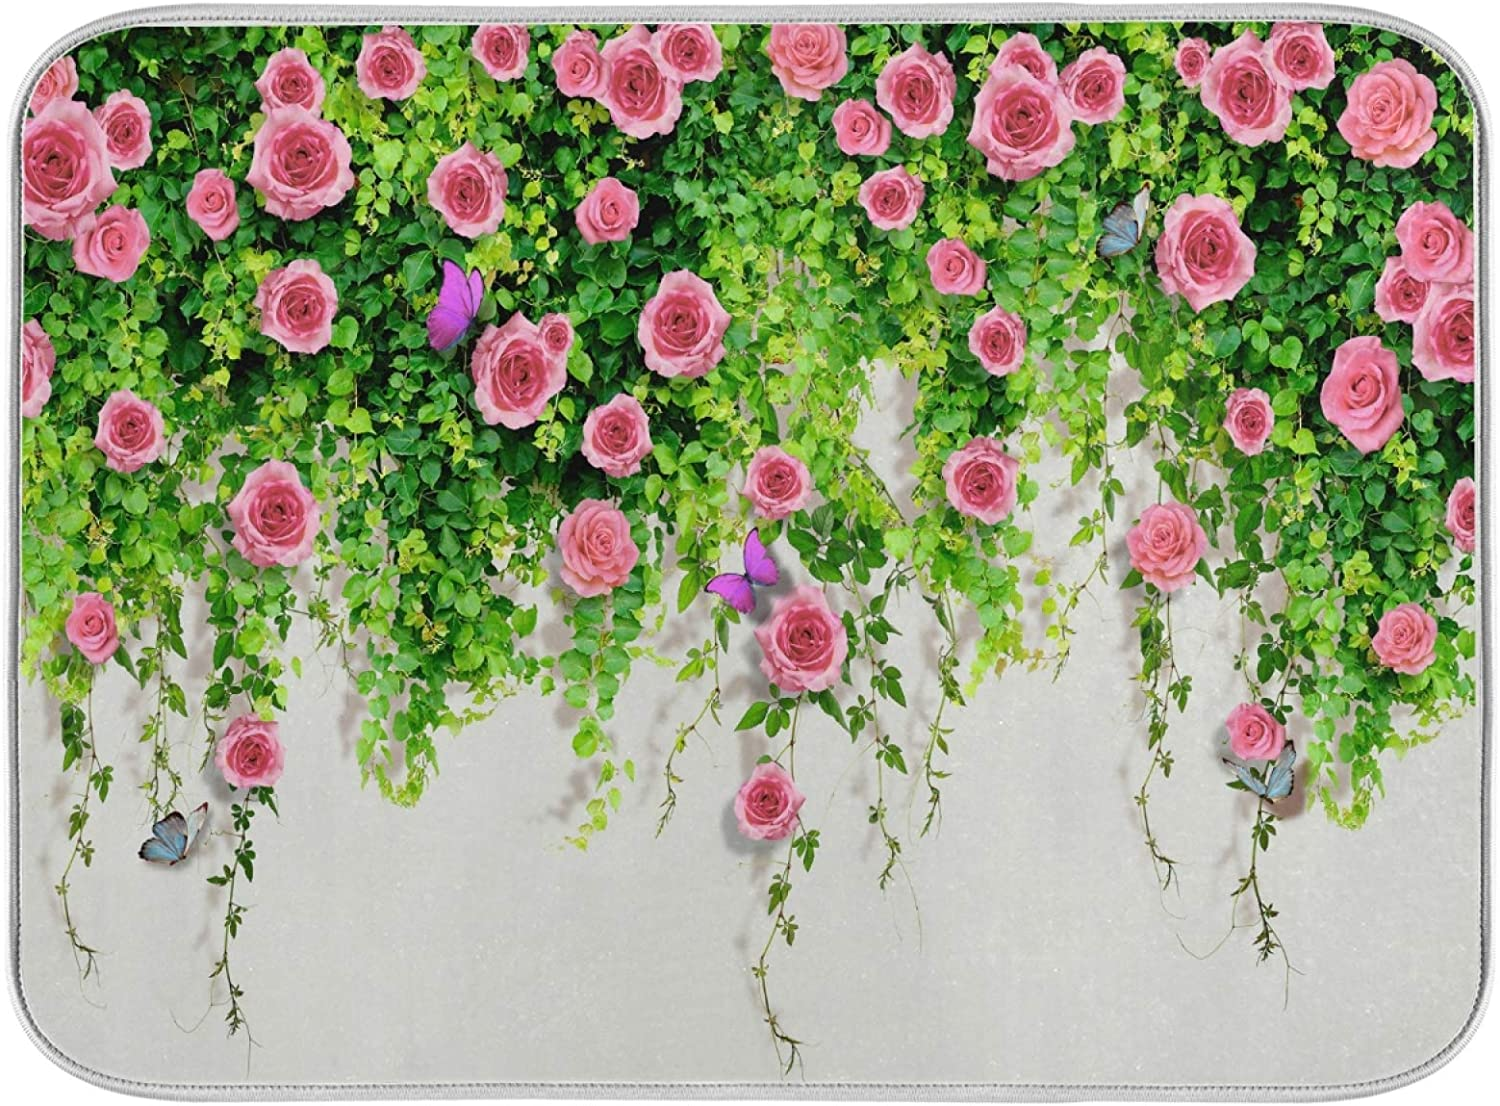 3D Pink Roses With Butterflies On A Living Wall Of Greenery Dish Drying Mat Kitchen Home Decor Absorbent Dishes Dry Pad 18x24 Inch Easy Clean Drainer Mats for Baby Bottle Countertops